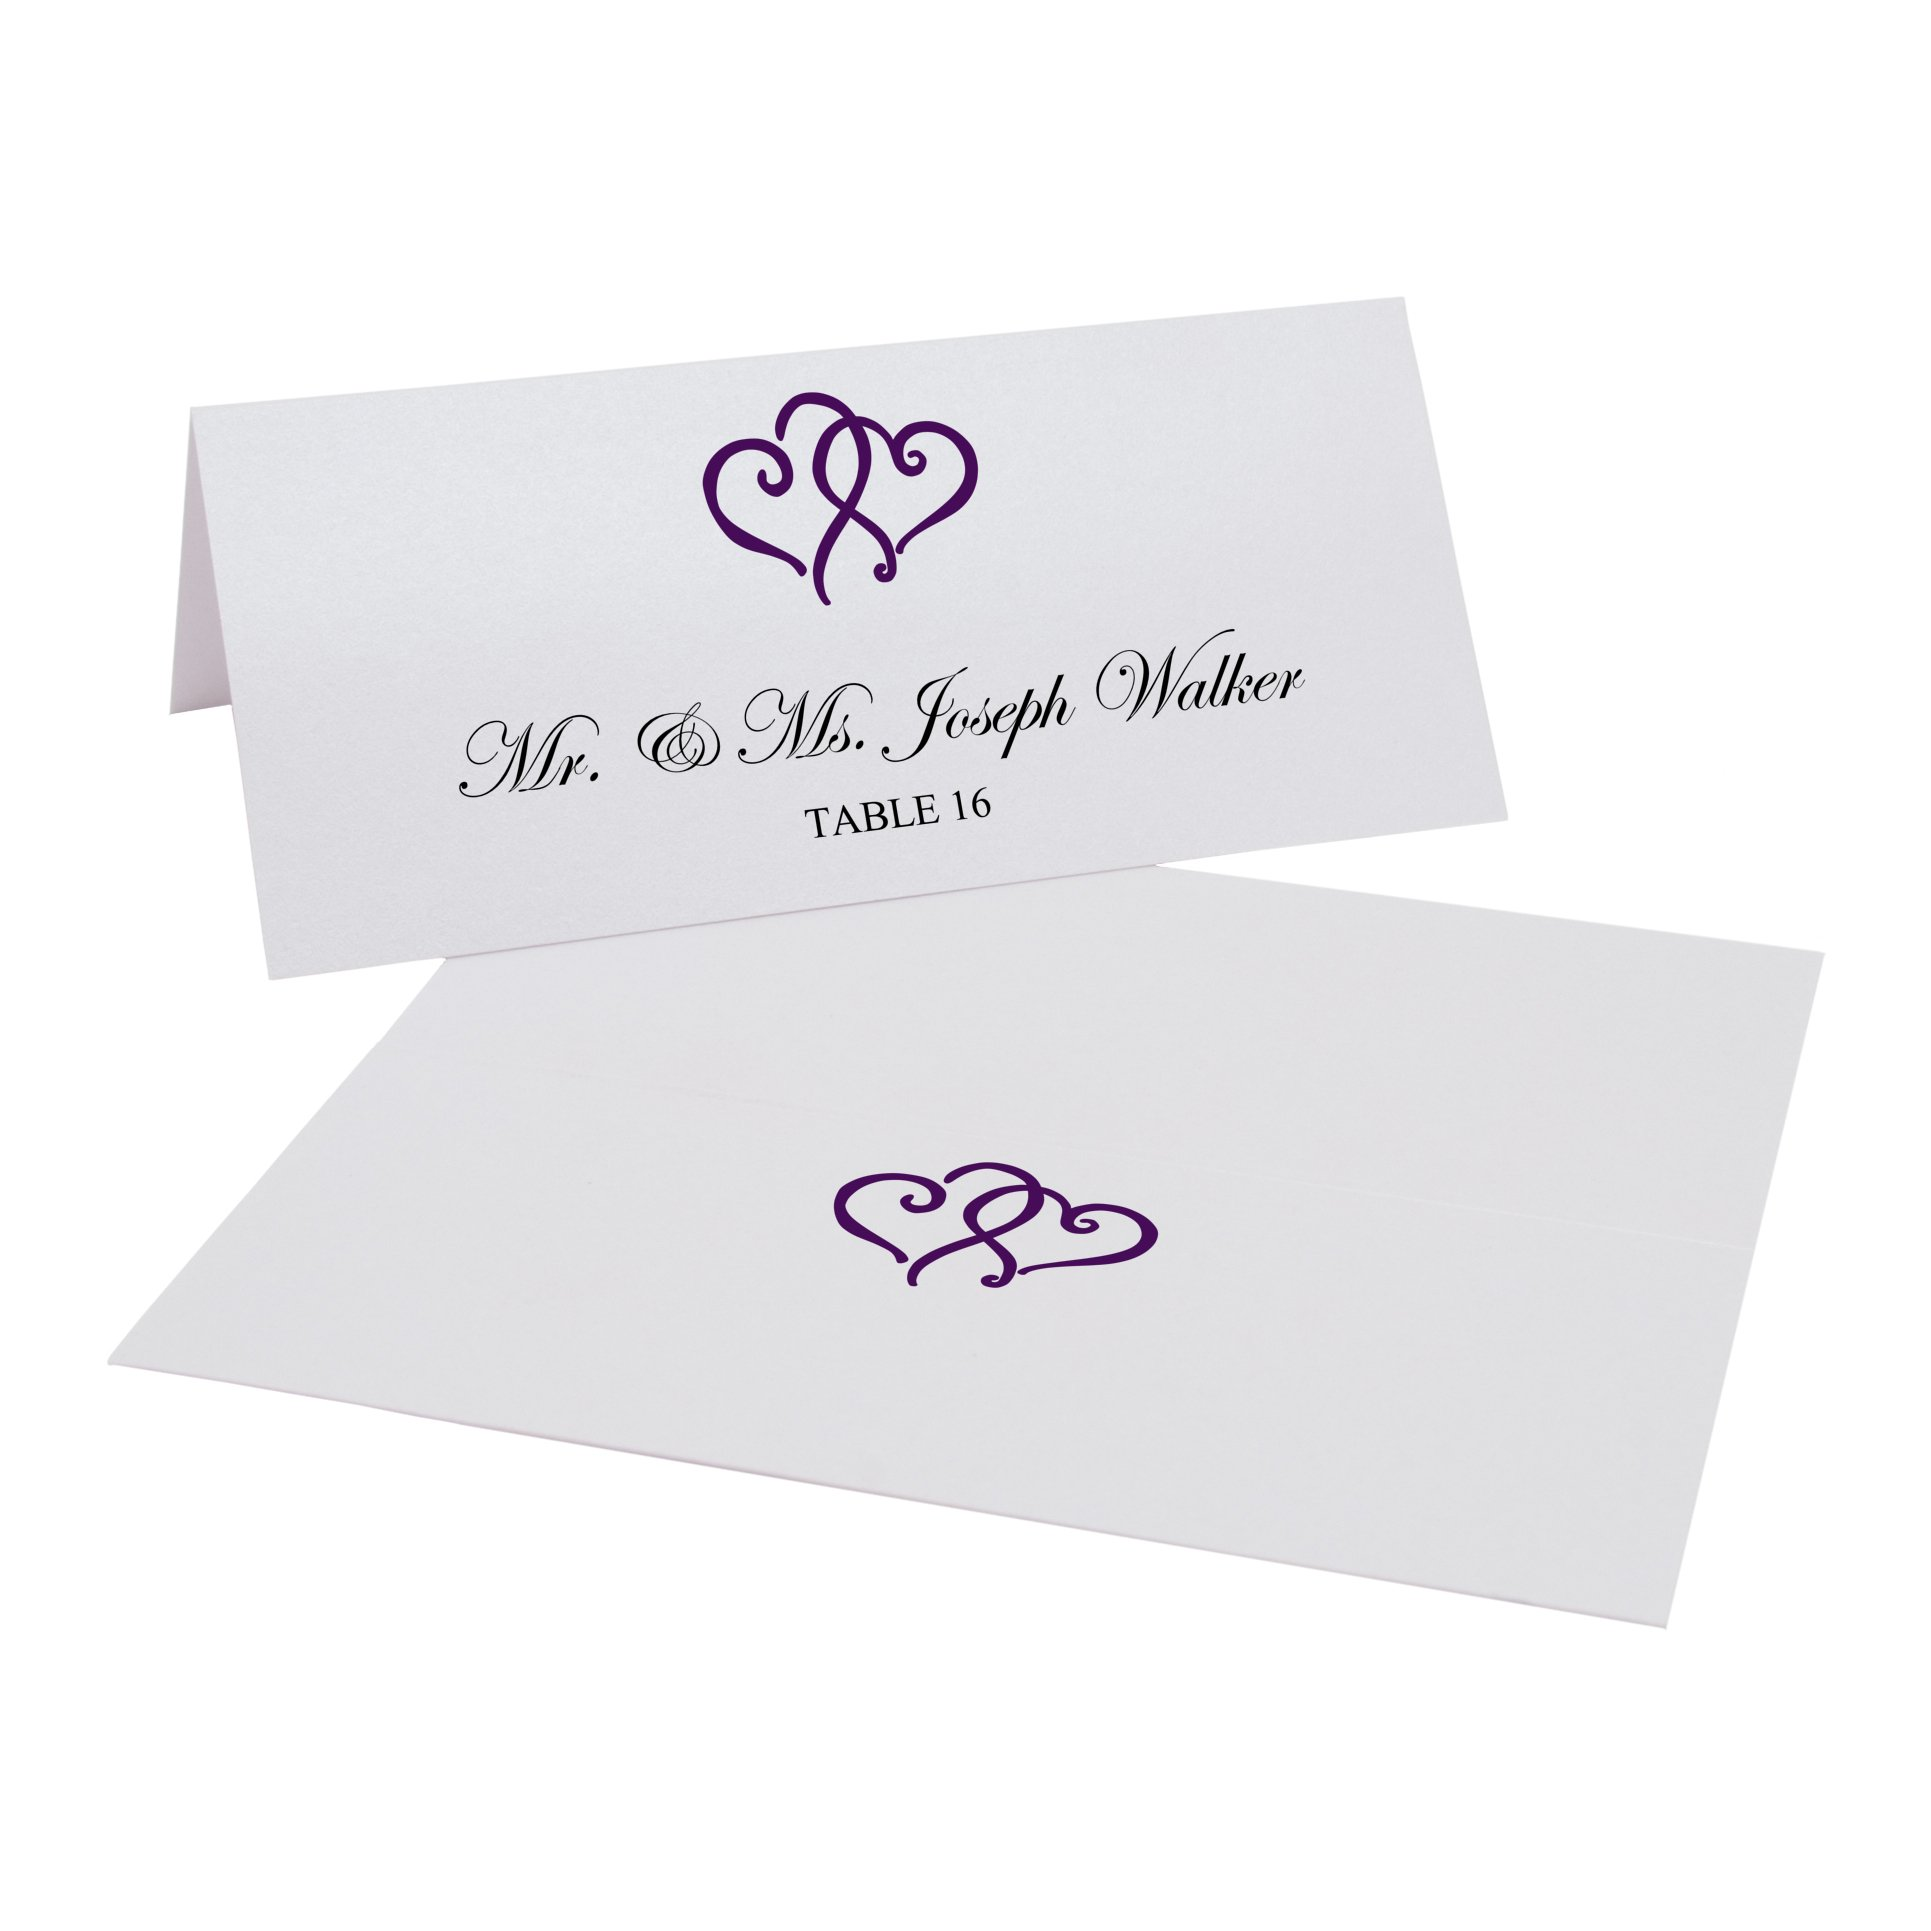 Linked Hearts Easy Print Place Cards, Pearl White, Eggplant, Set of 350 (88 Sheets)